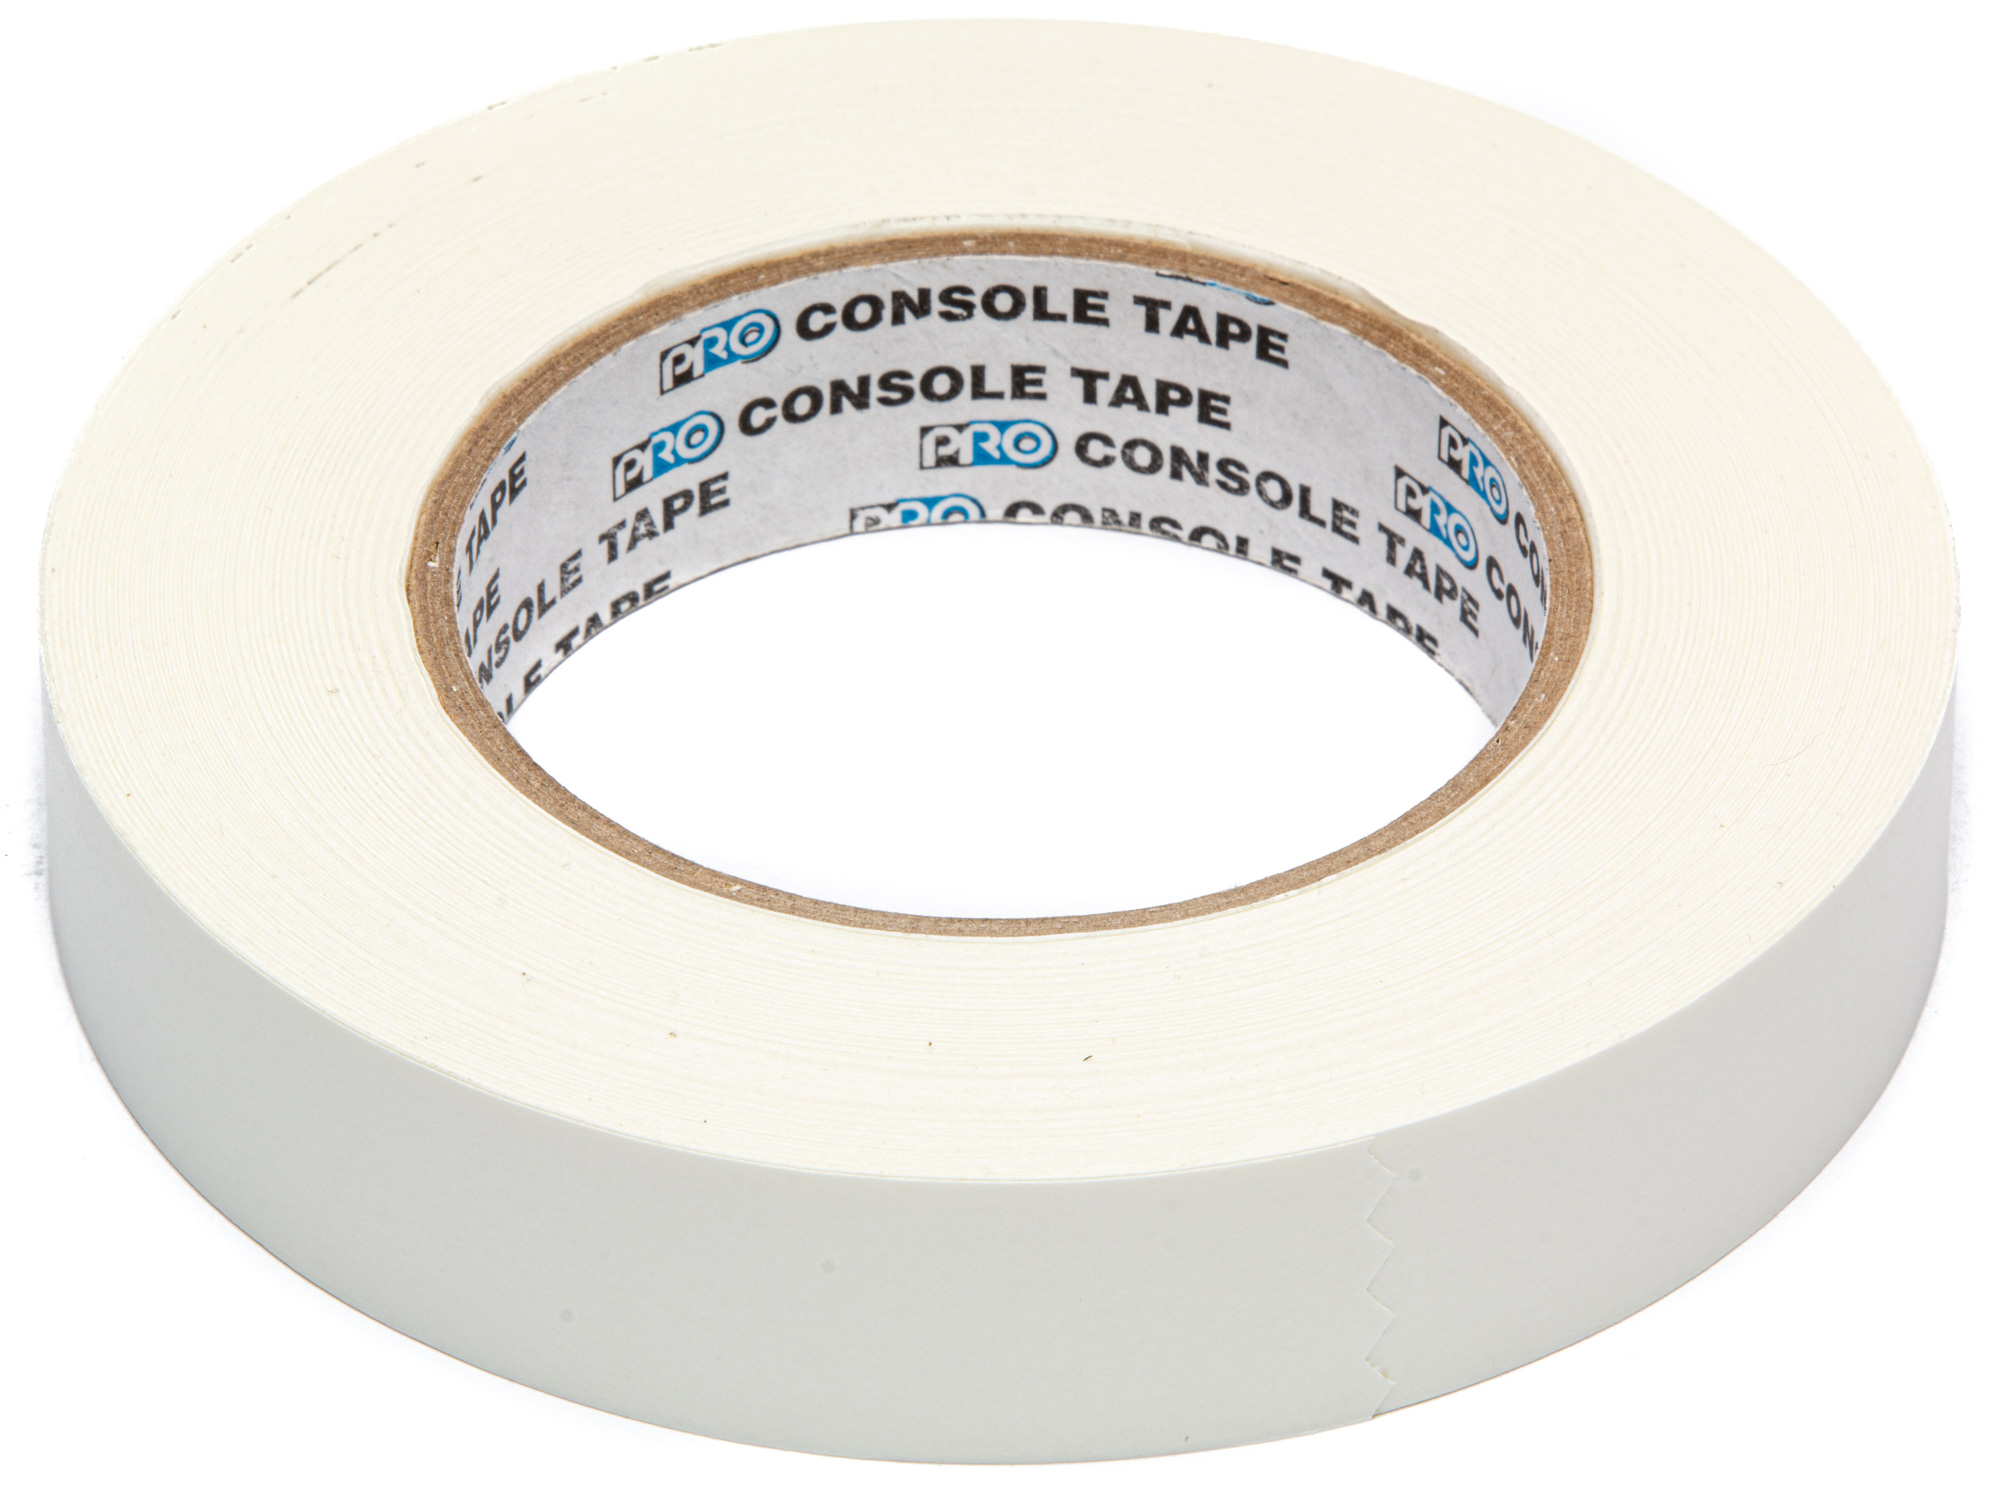 Pro Tapes 1-Inch Wide White Removable Console Tape